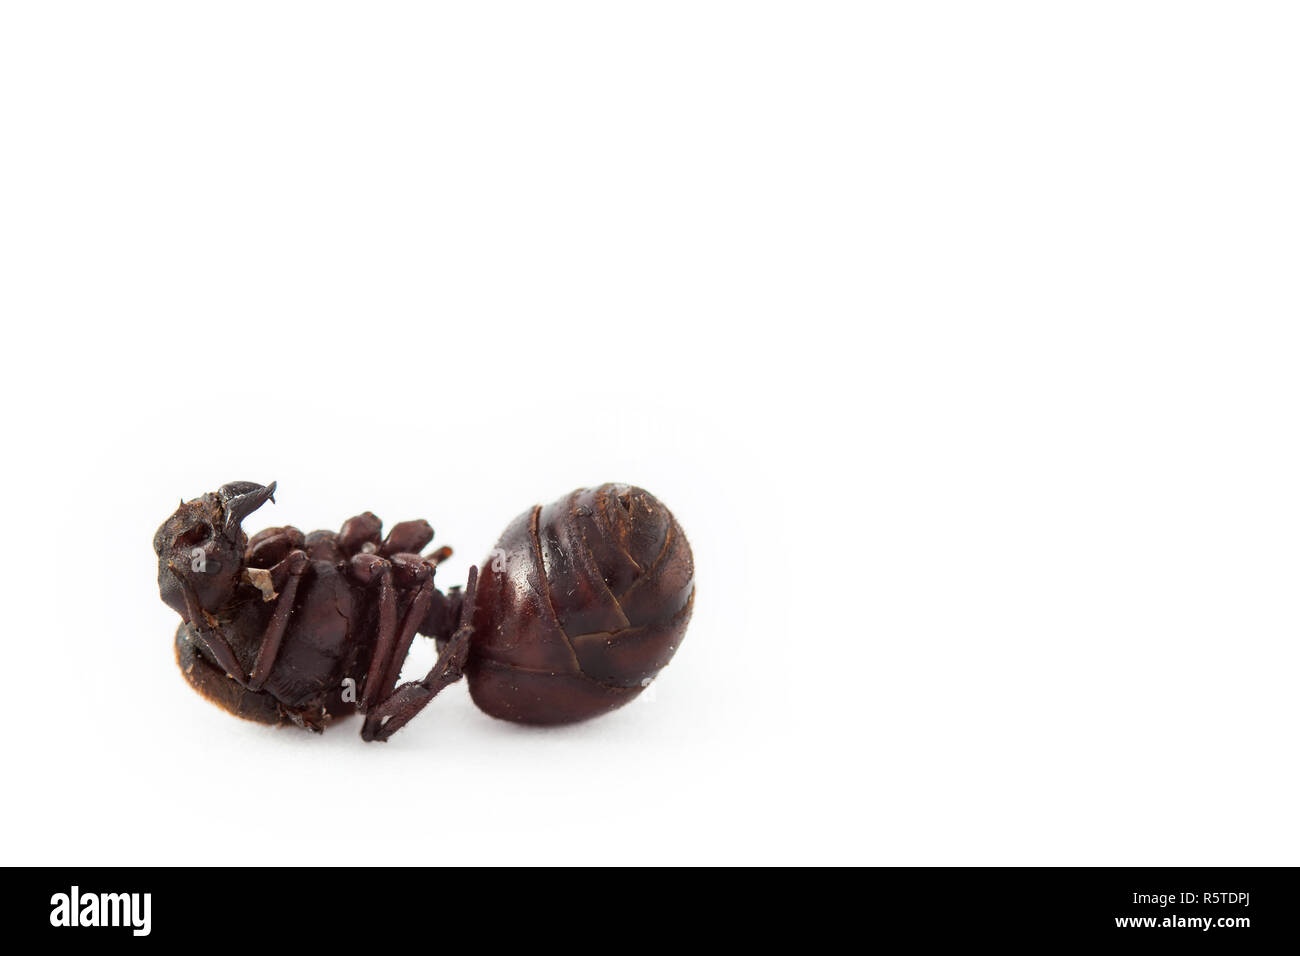 Edible ant traditional from Santander region of Colombia called Hormiga  Culona which literally translated in english